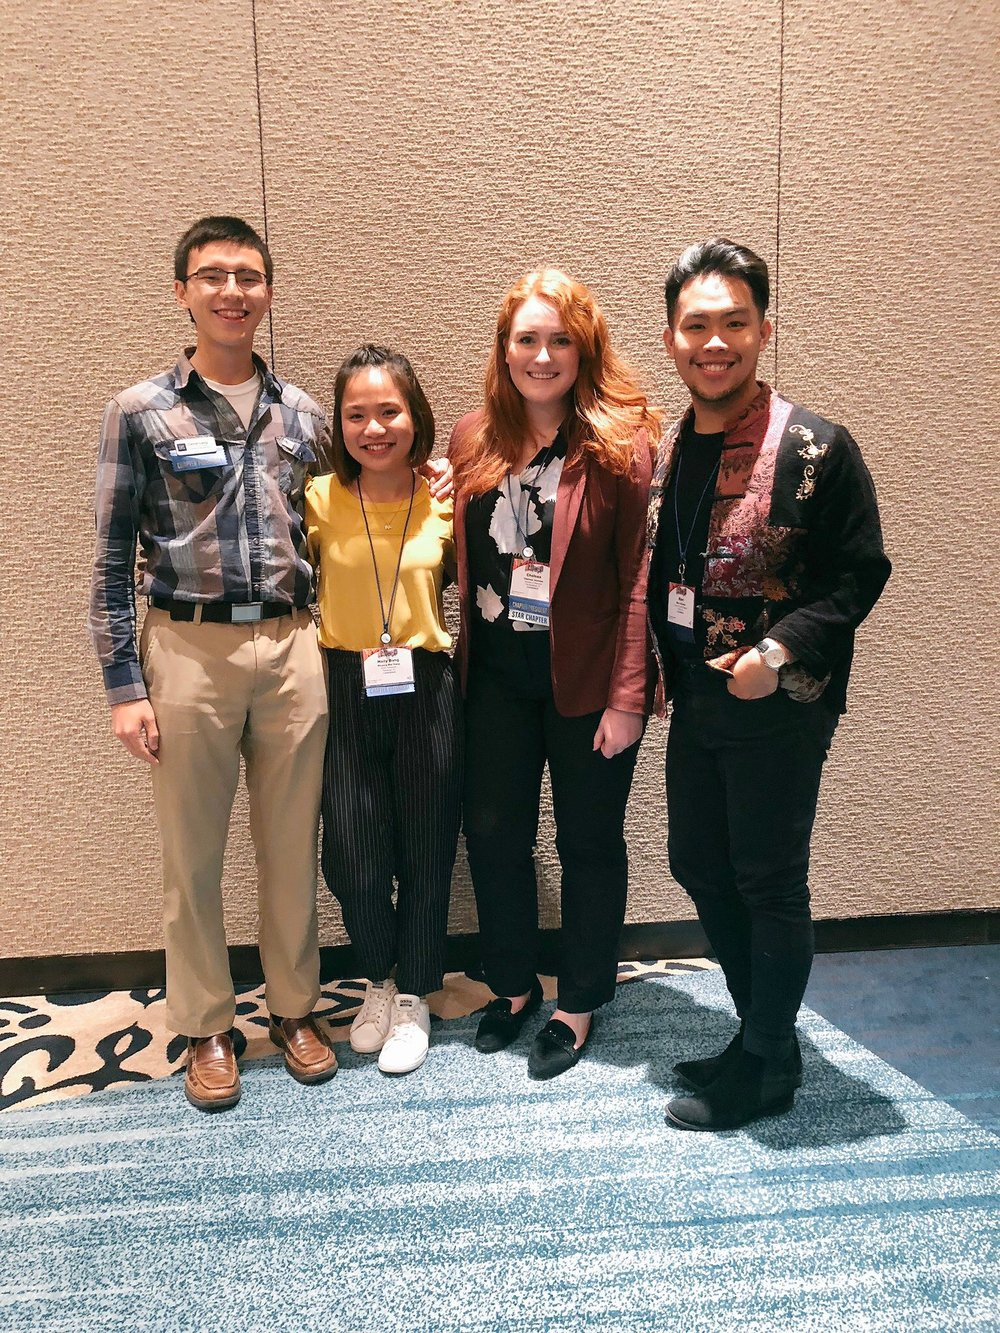 (From Left to Right: University of Nevada Chapter President Daniel Long, SUNY Plattsburg New York Chapter President Haily Dang, University of Oklahoma Chapter President Chelsea Journee, University of Central Oklahoma President Marc Estuche)